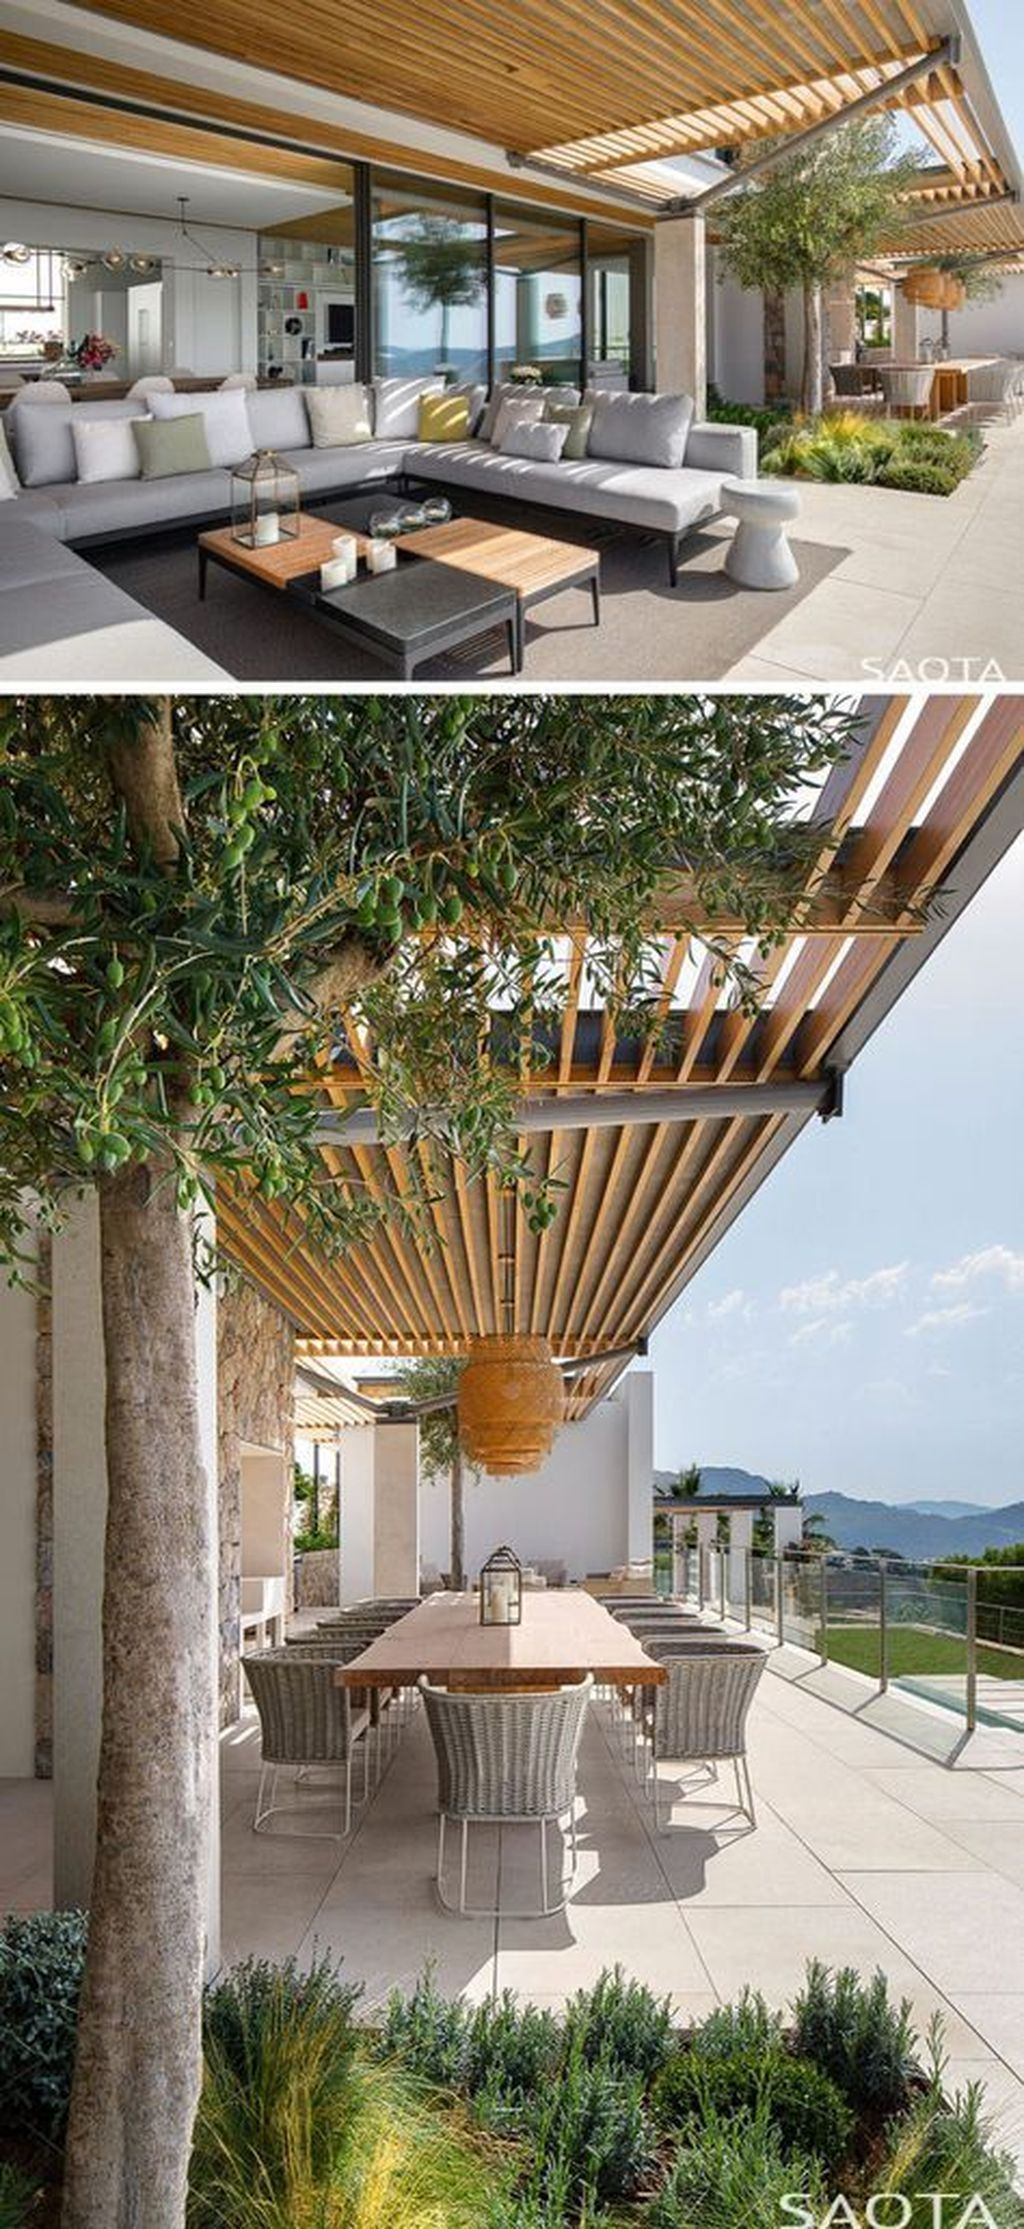 20 Outstanding Outdoor Dining Room Ideas In 2020 Pergola